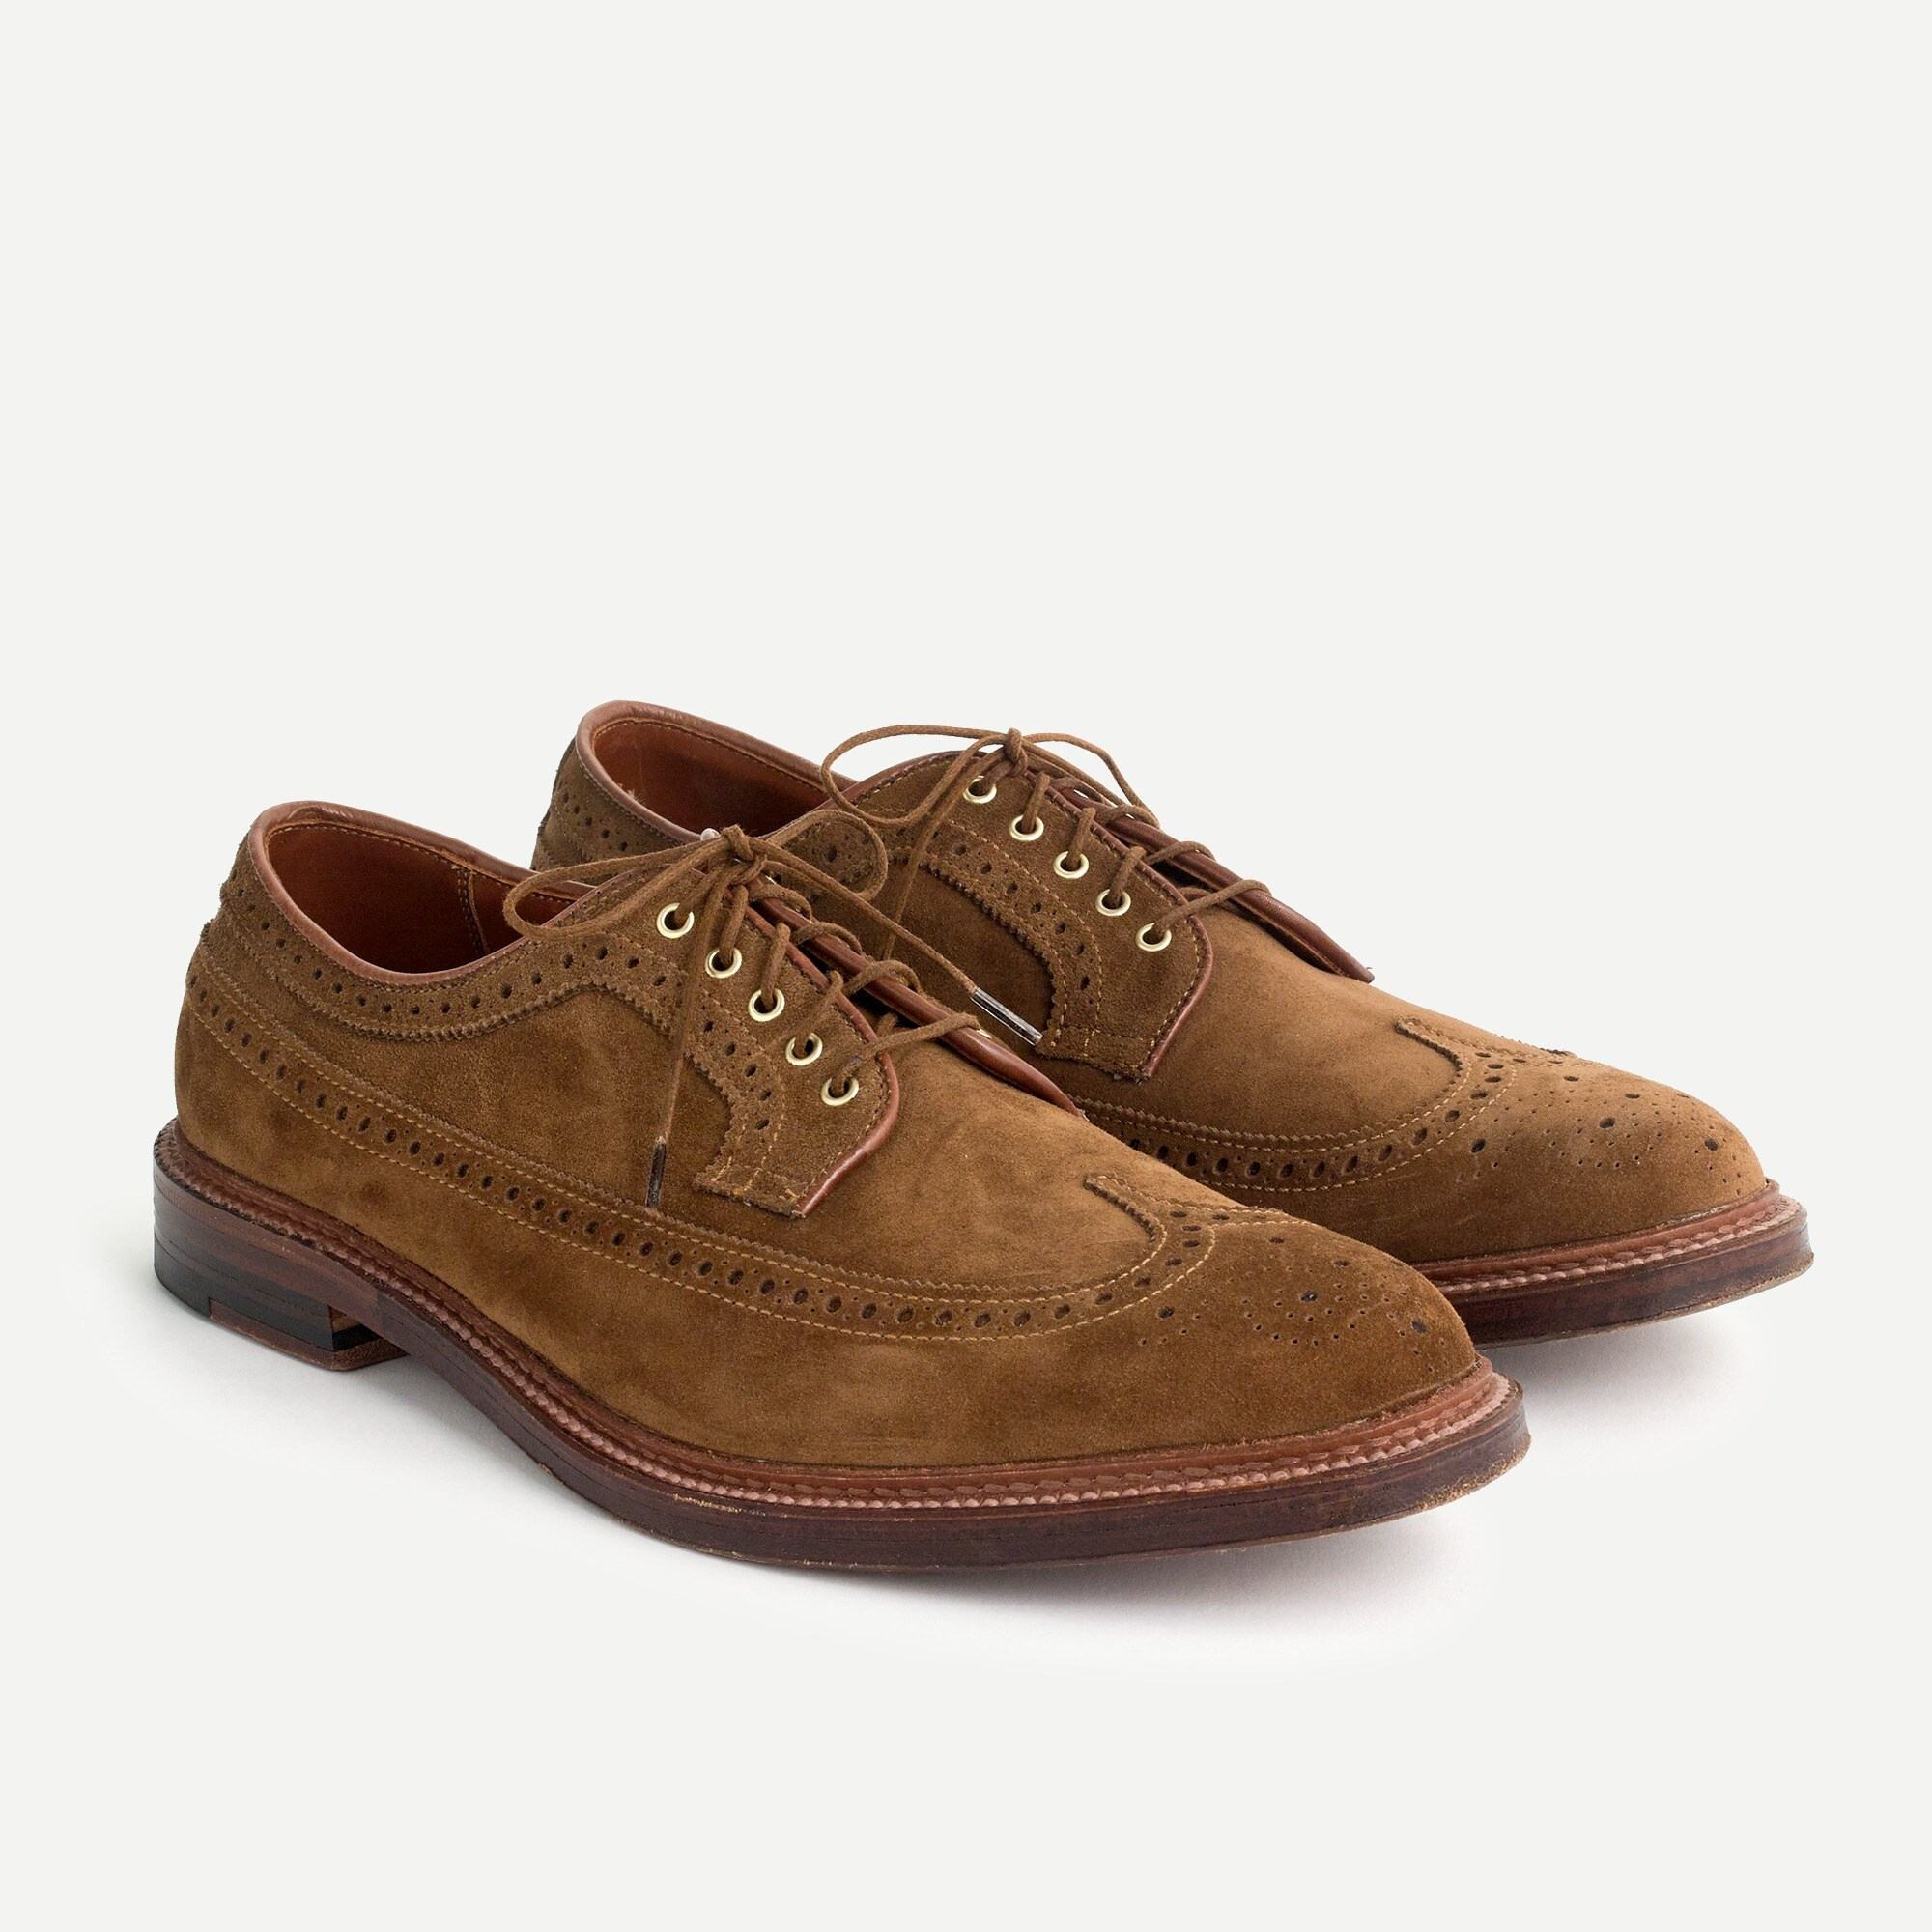 Alden® for J.Crew longwing bluchers in tan suede